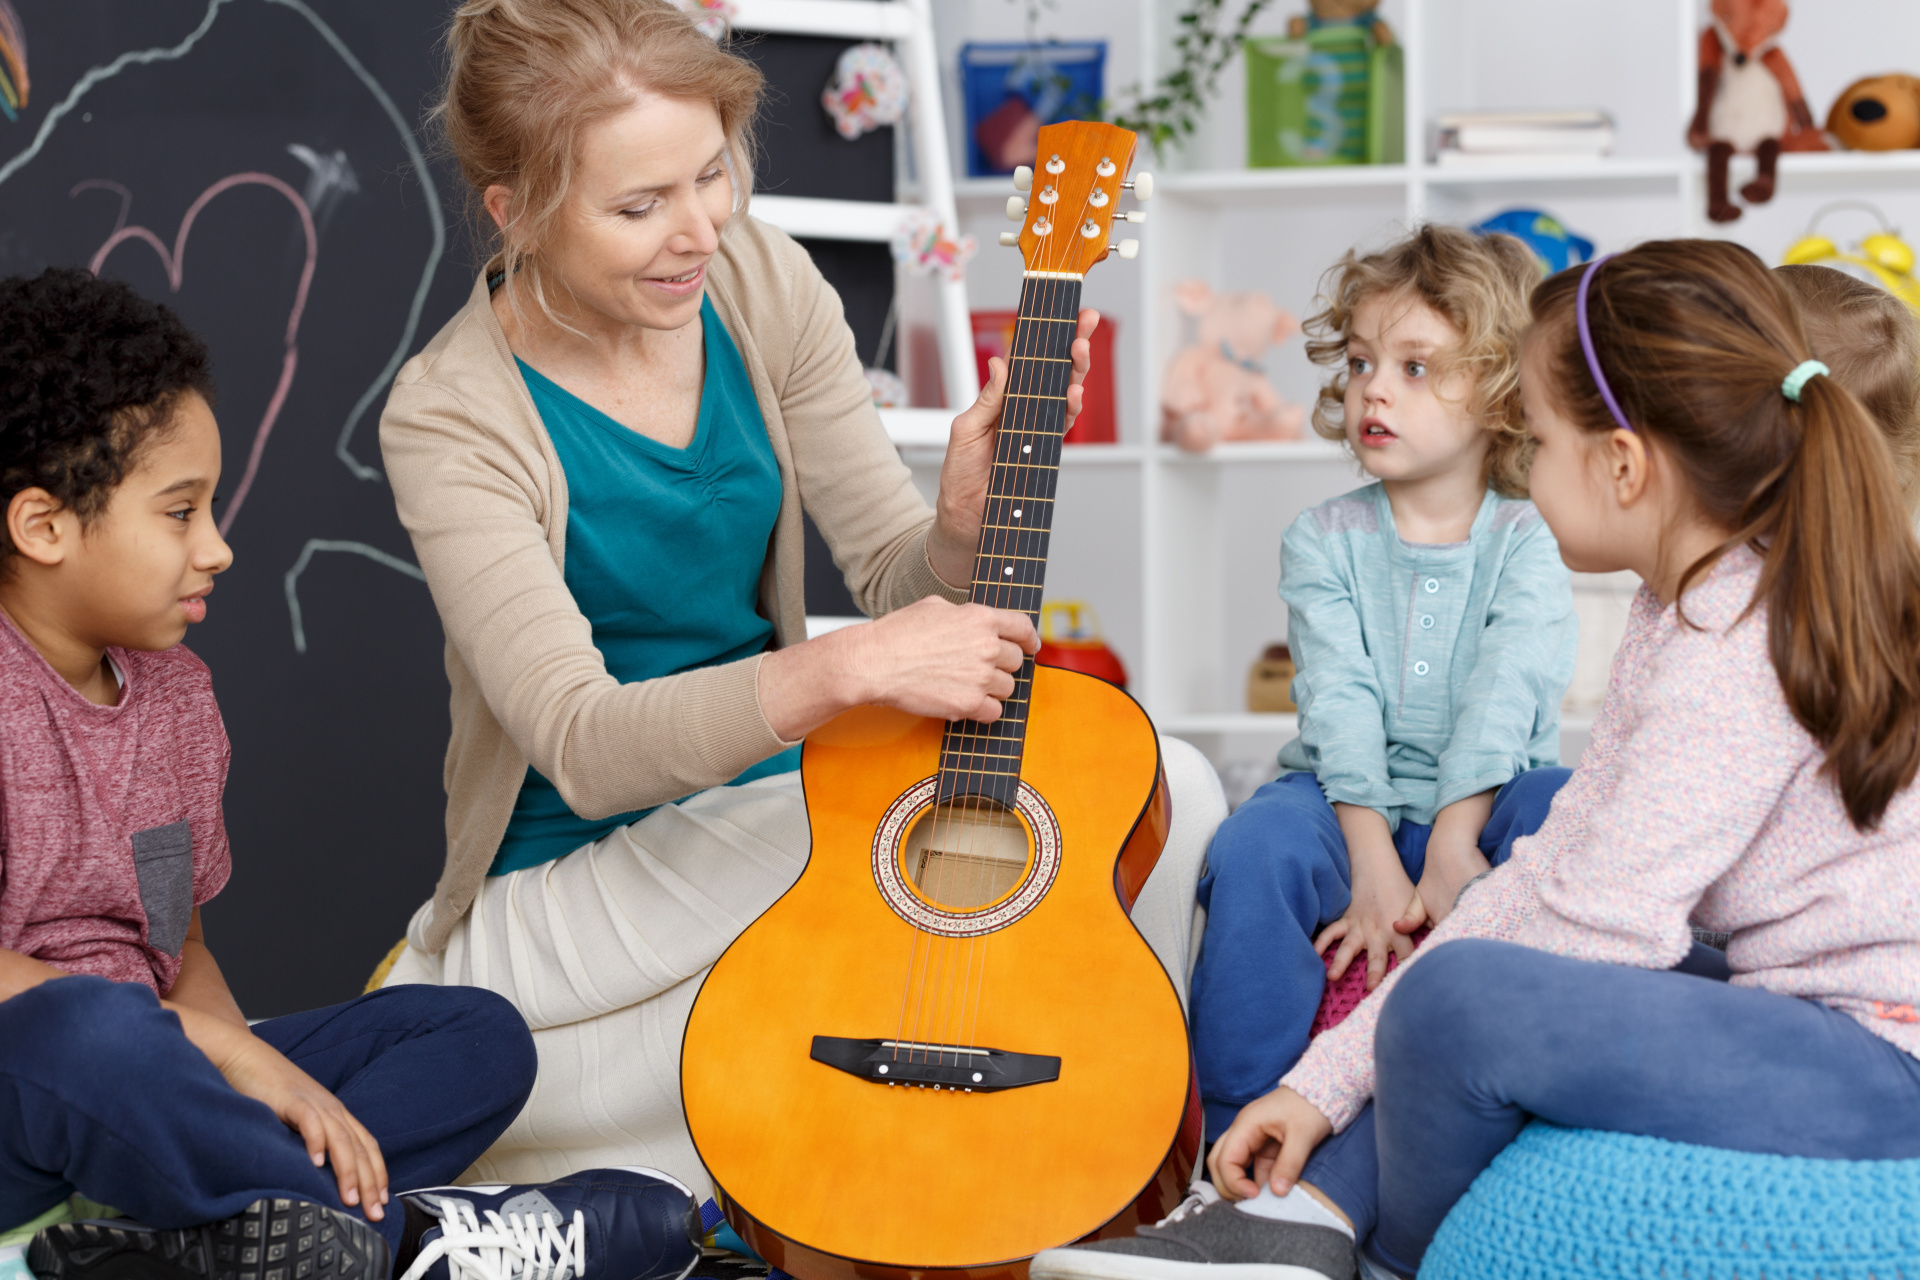 Group Guitar Lessons, Recorder Lessons, and Violin Lessons